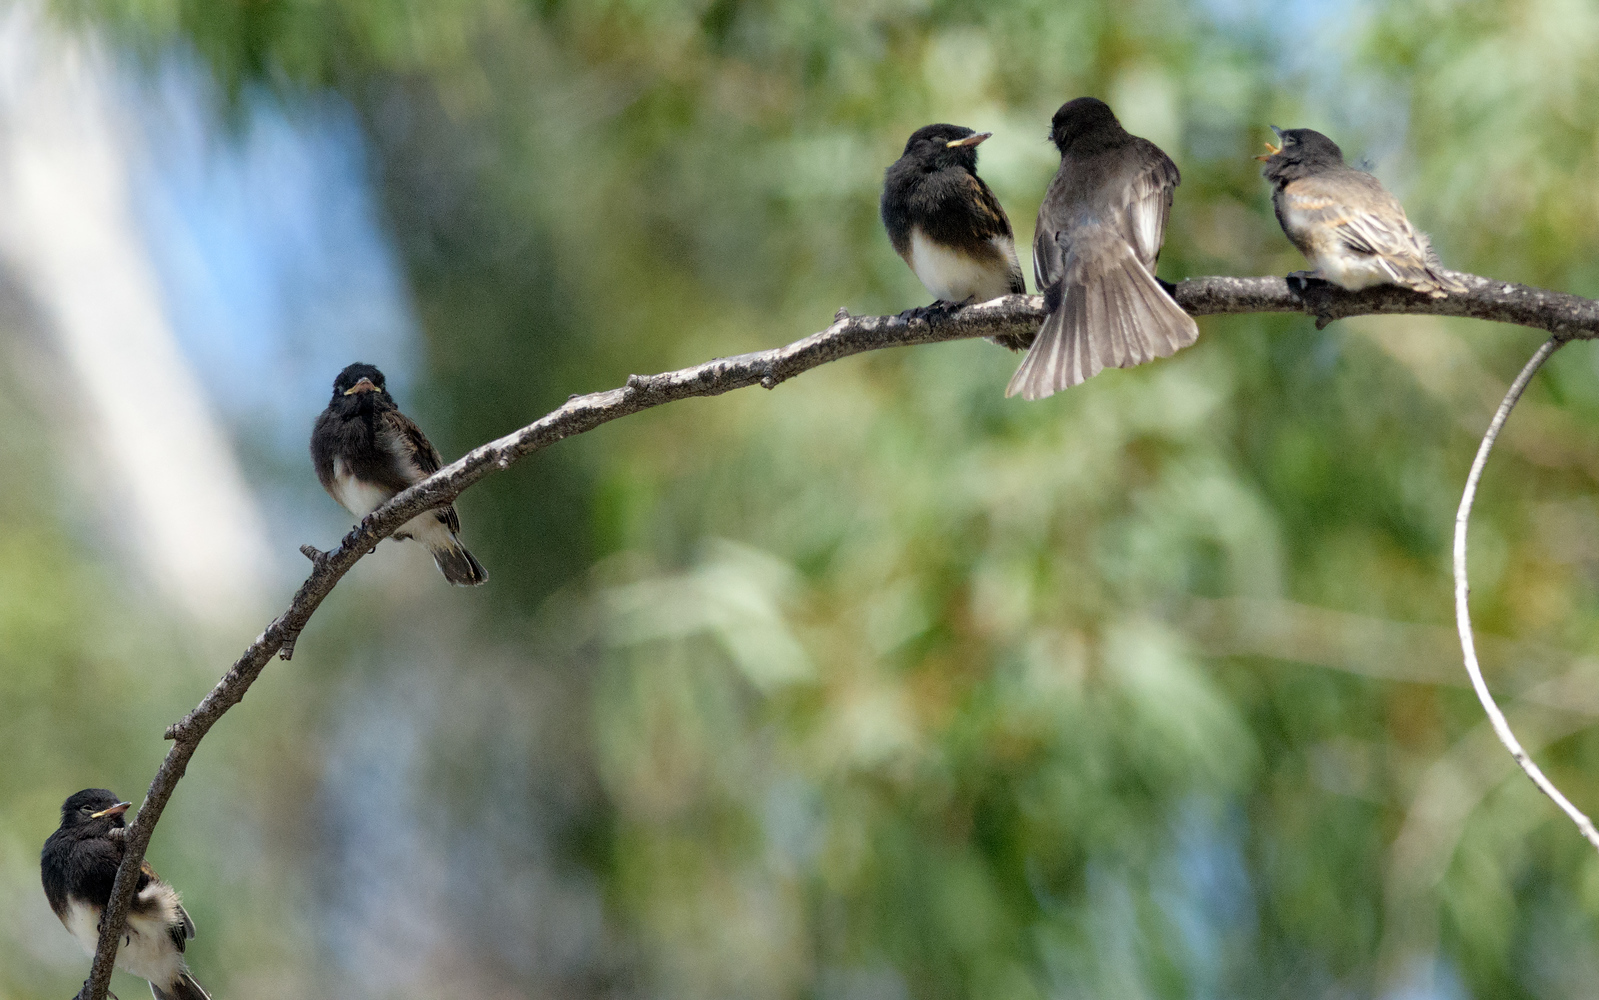 Black phoebe fledgelings & mom